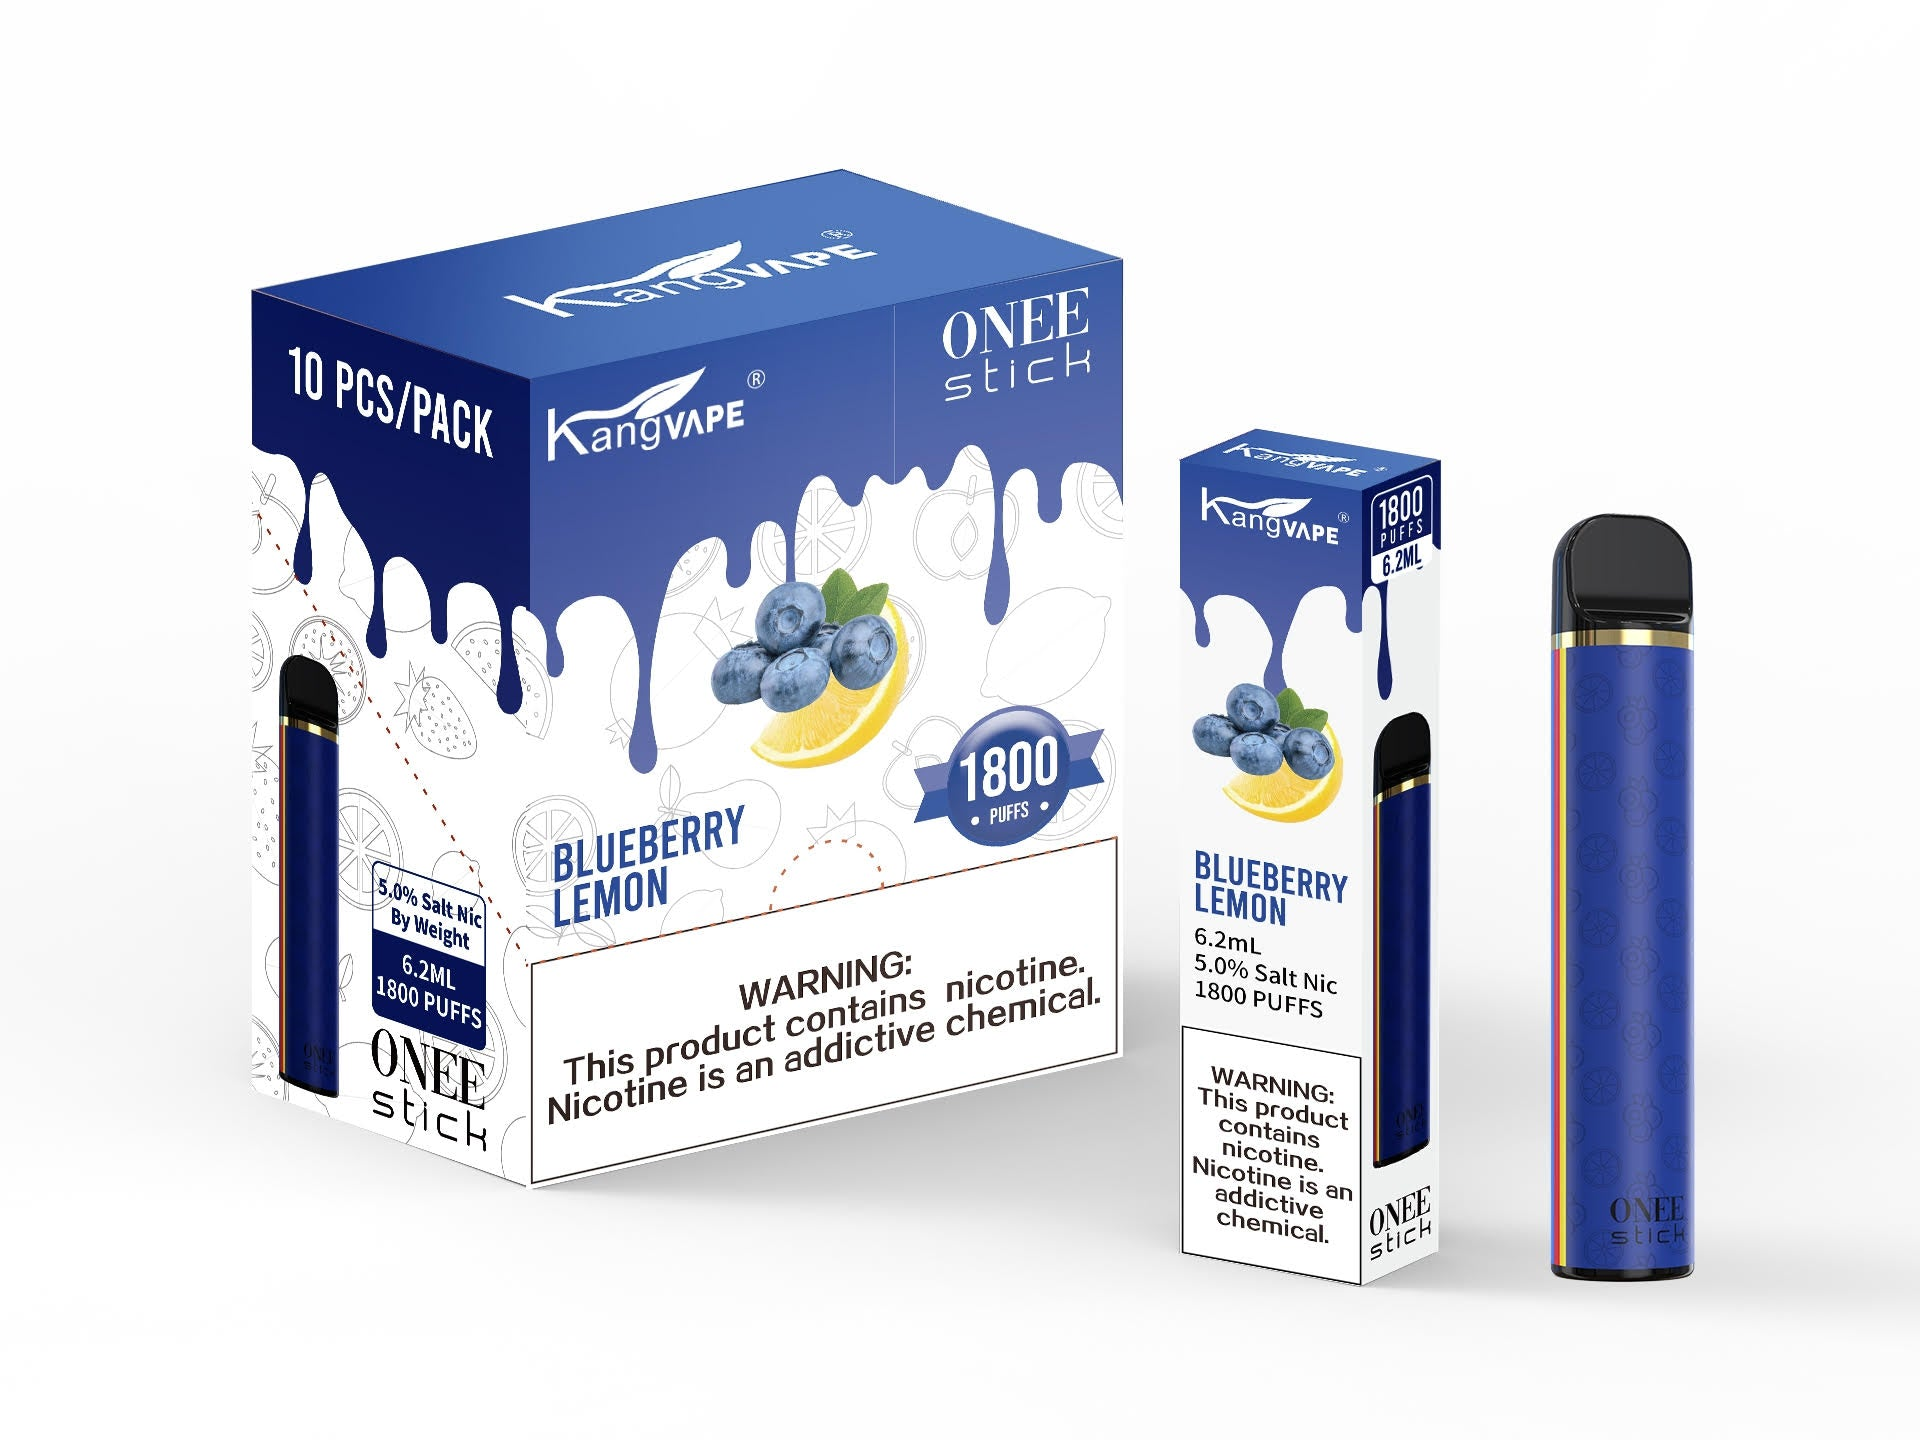 KangVape - Onee Stick 1800 Puffs - Disposable Vape - Dark blue device standing next to its box and case with white and dark blue labels.